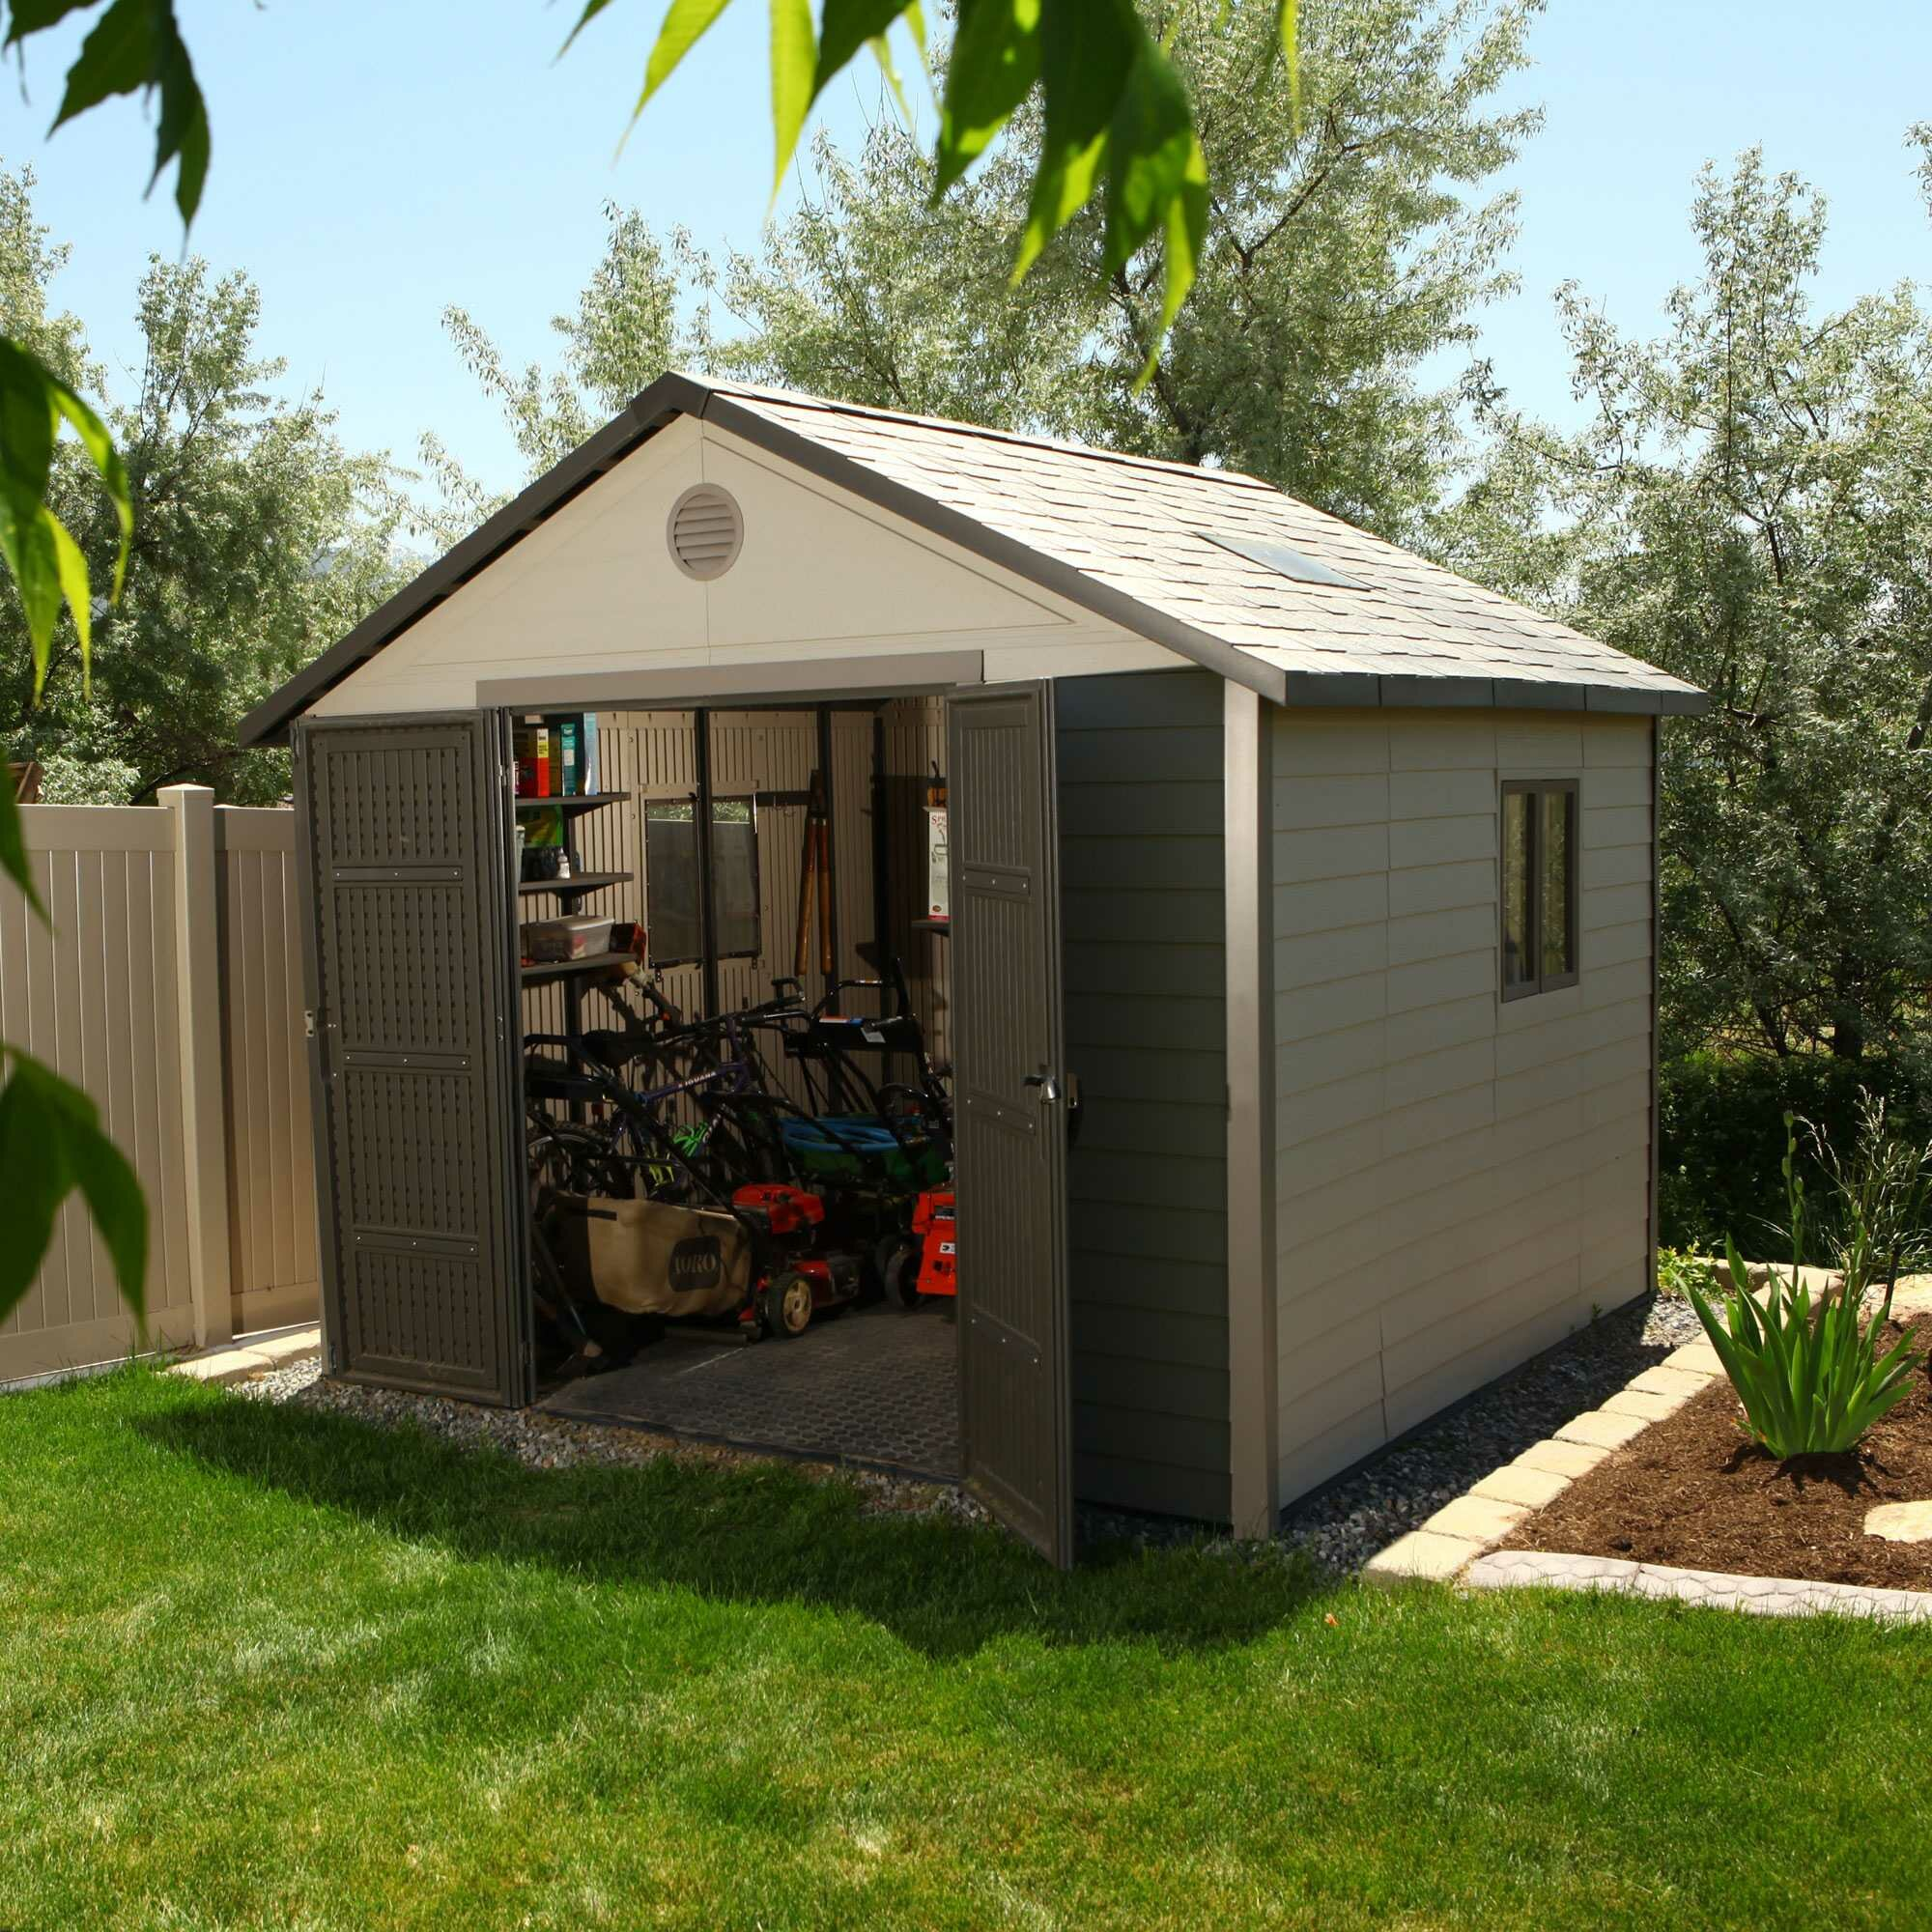 Lifetime 10 ft w x 10 ft d plastic storage shed for Outdoor garden shed